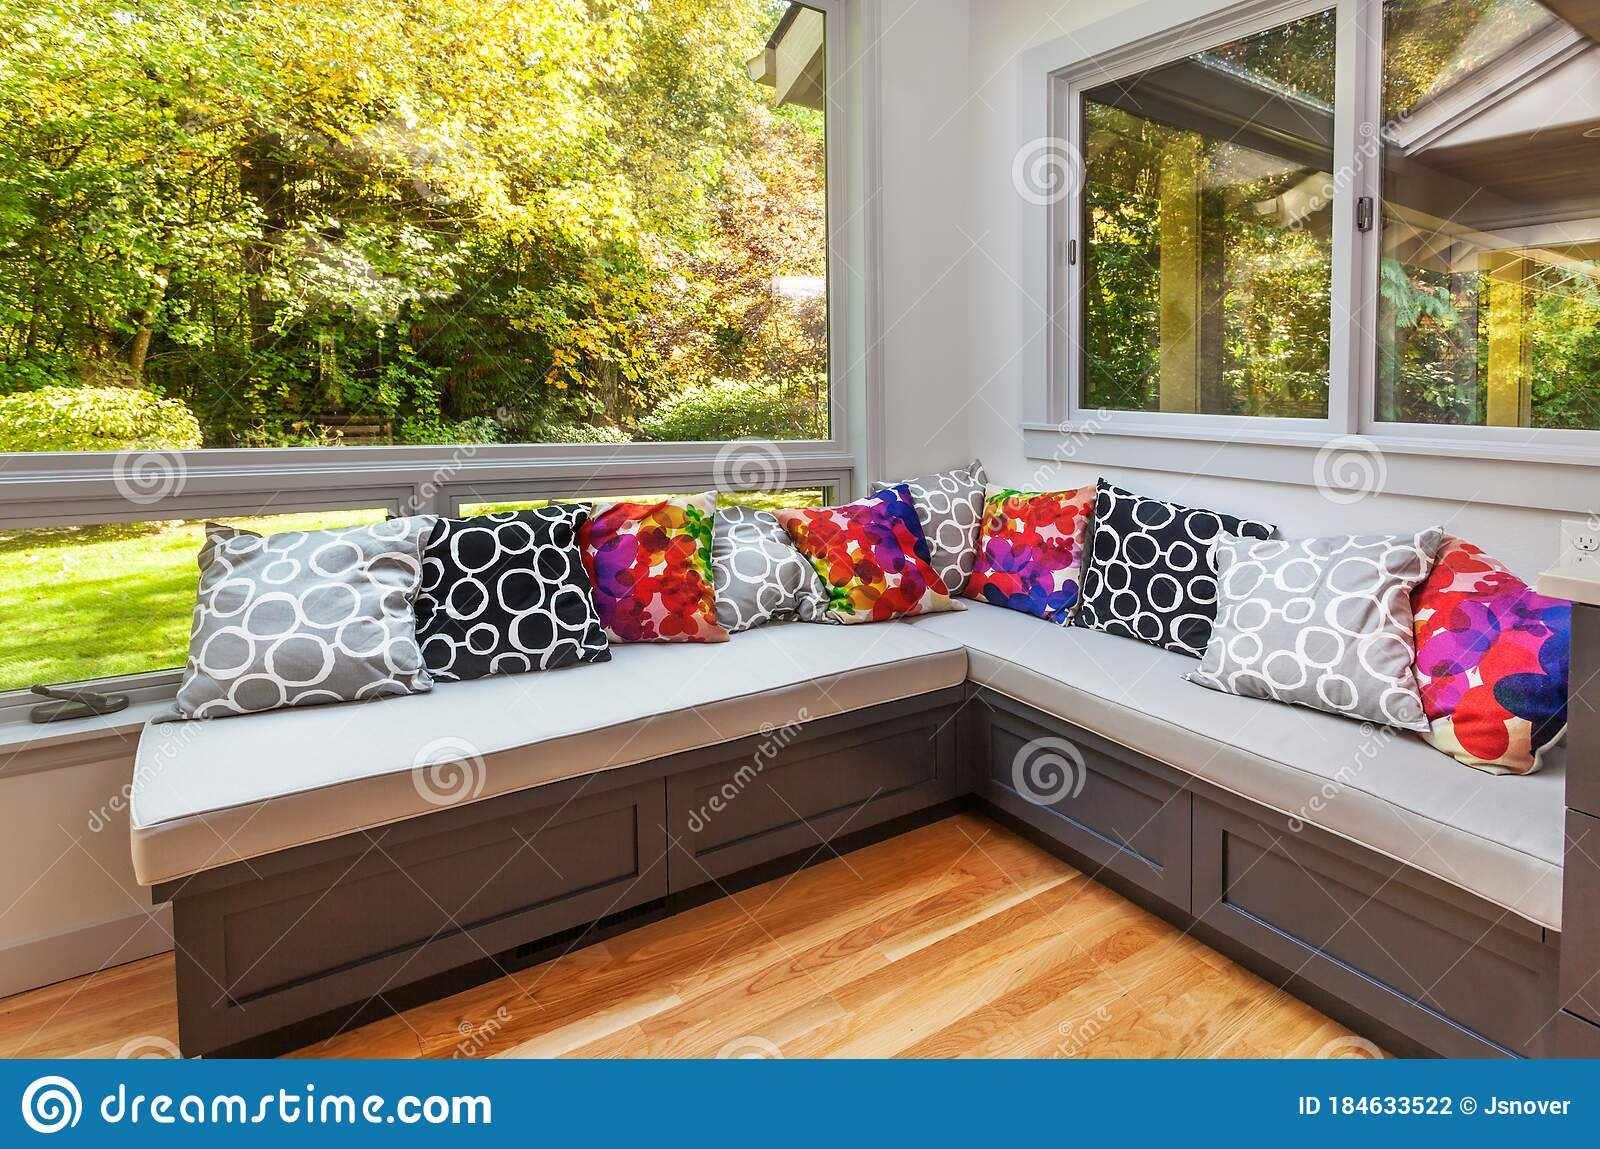 Picture of: Kitchen Window Seat With Cushions Stock Photo Image Of View Hardwood 184633522